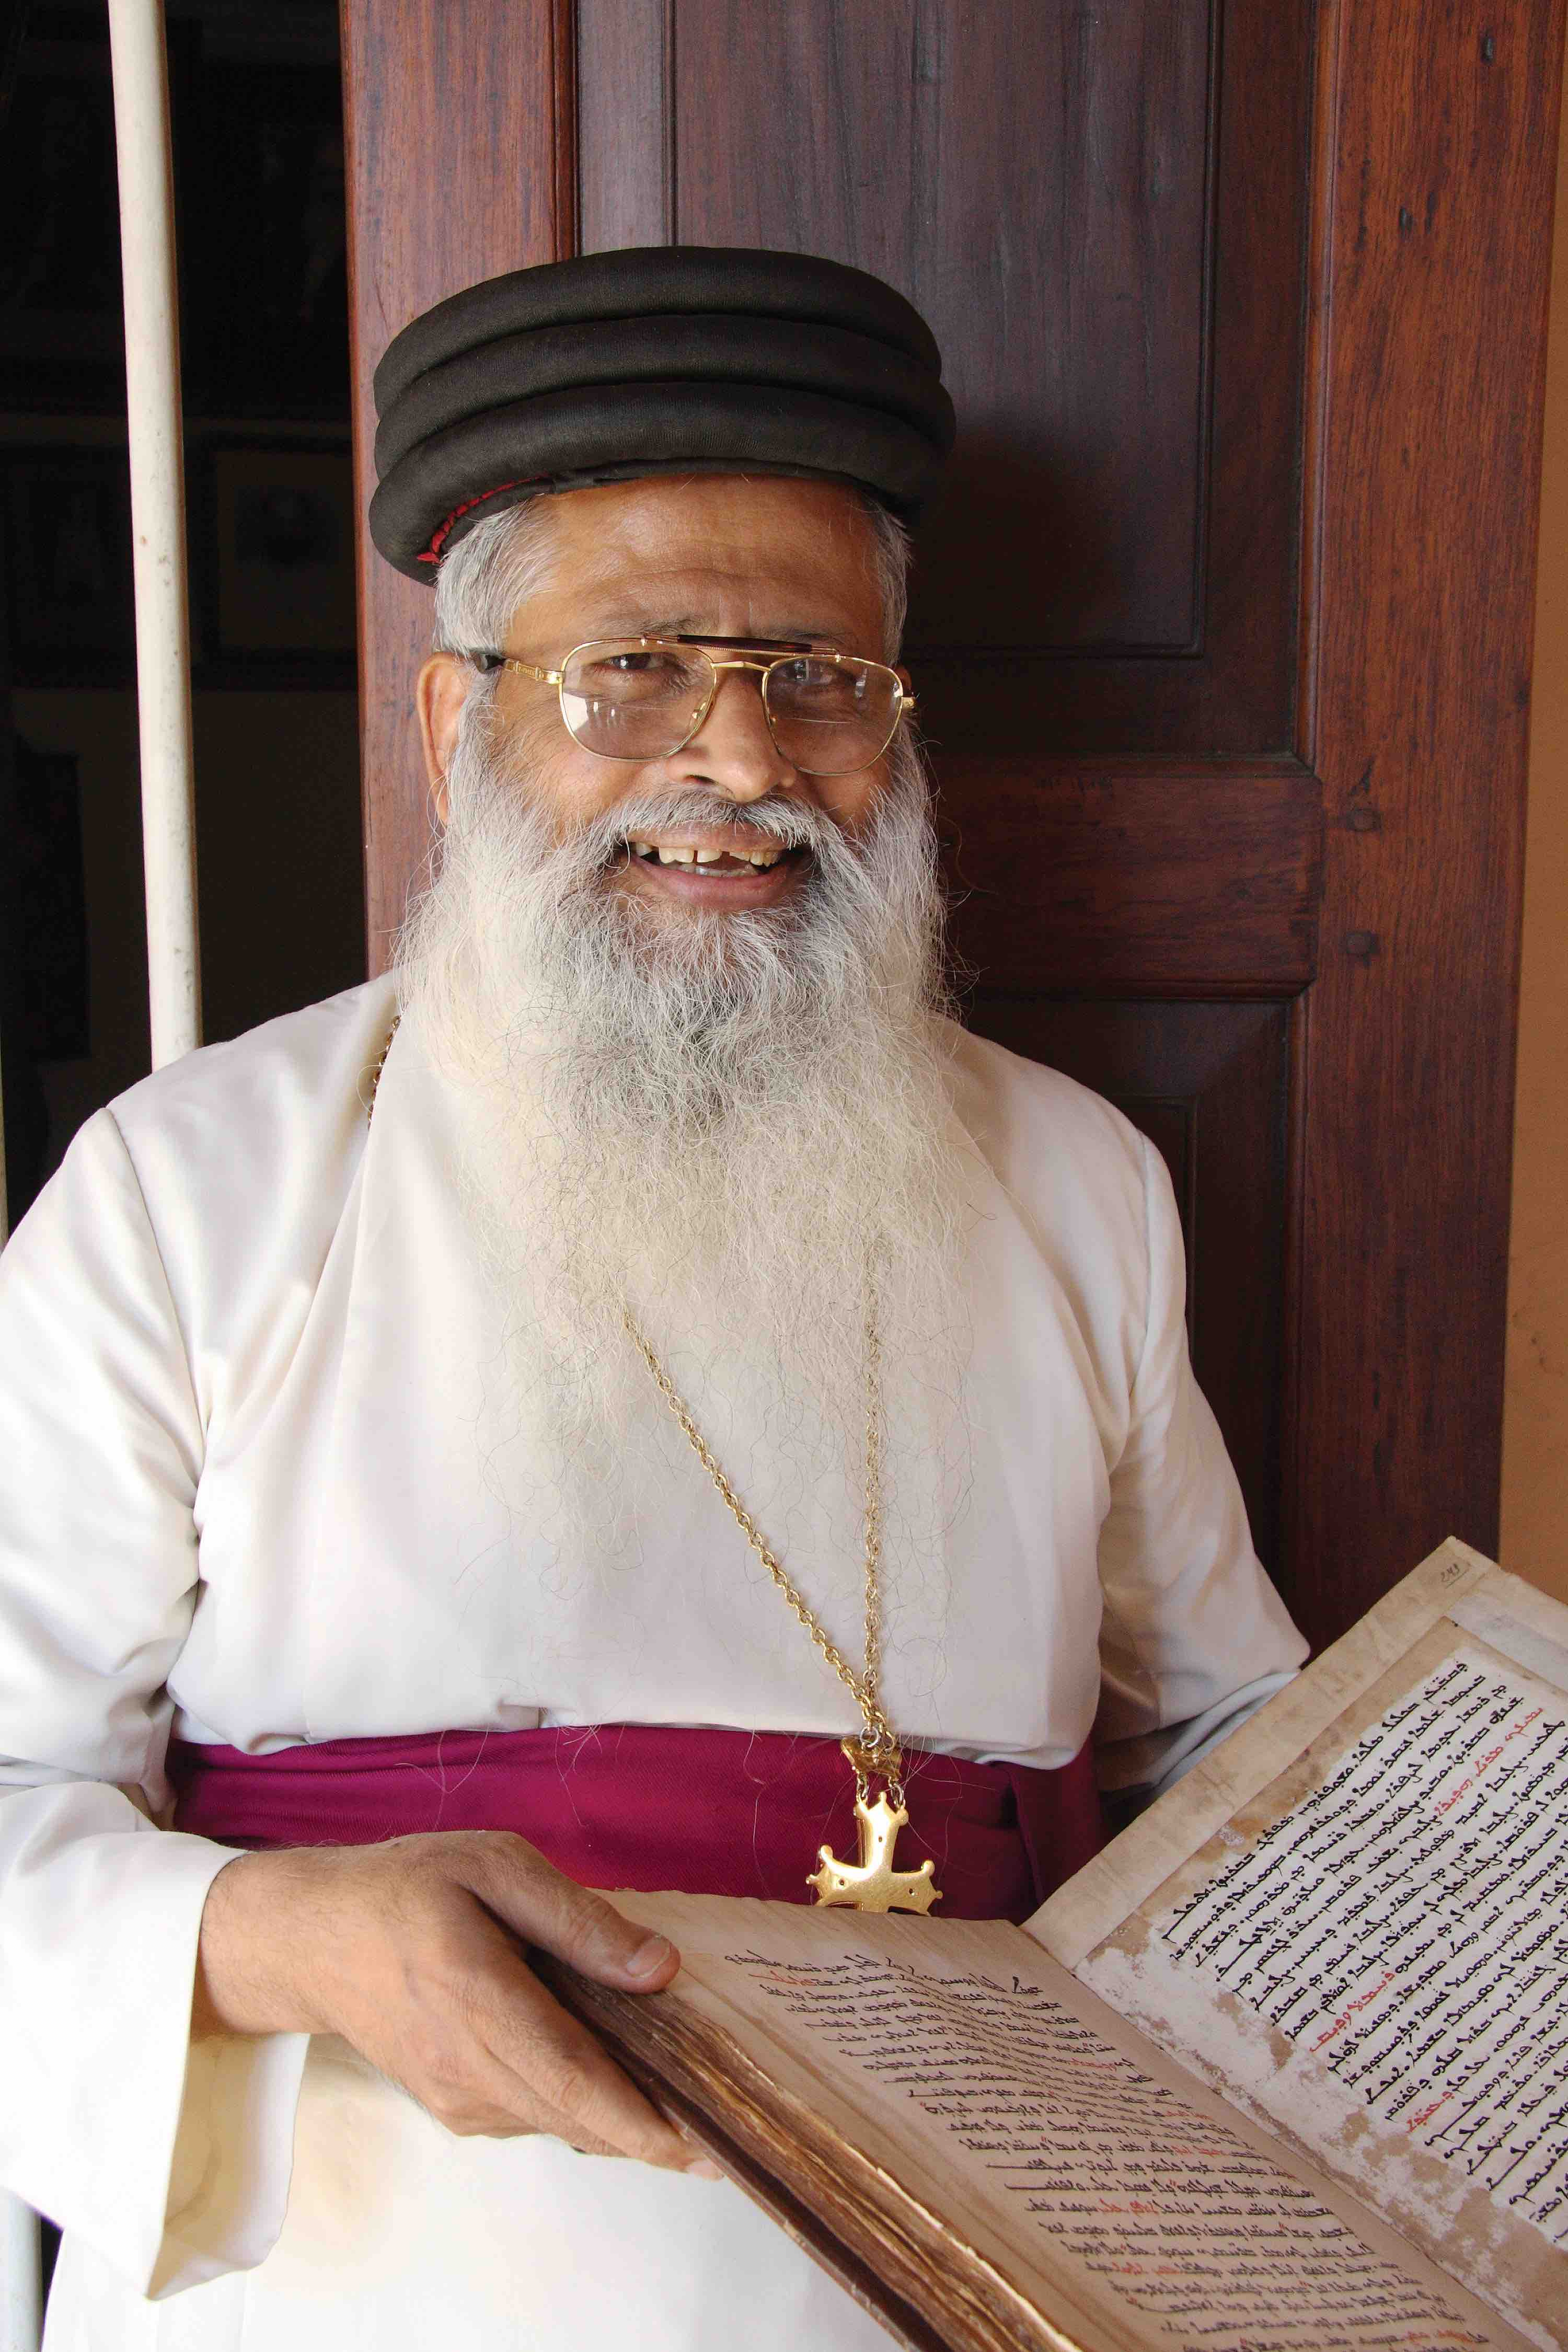 Mar Aprem Mooken, Chaldean (Assyrian Church of the East) Metropolitan of India, holding a Syriac manuscript from the collection of the Metropolitanate in Thrissur, India